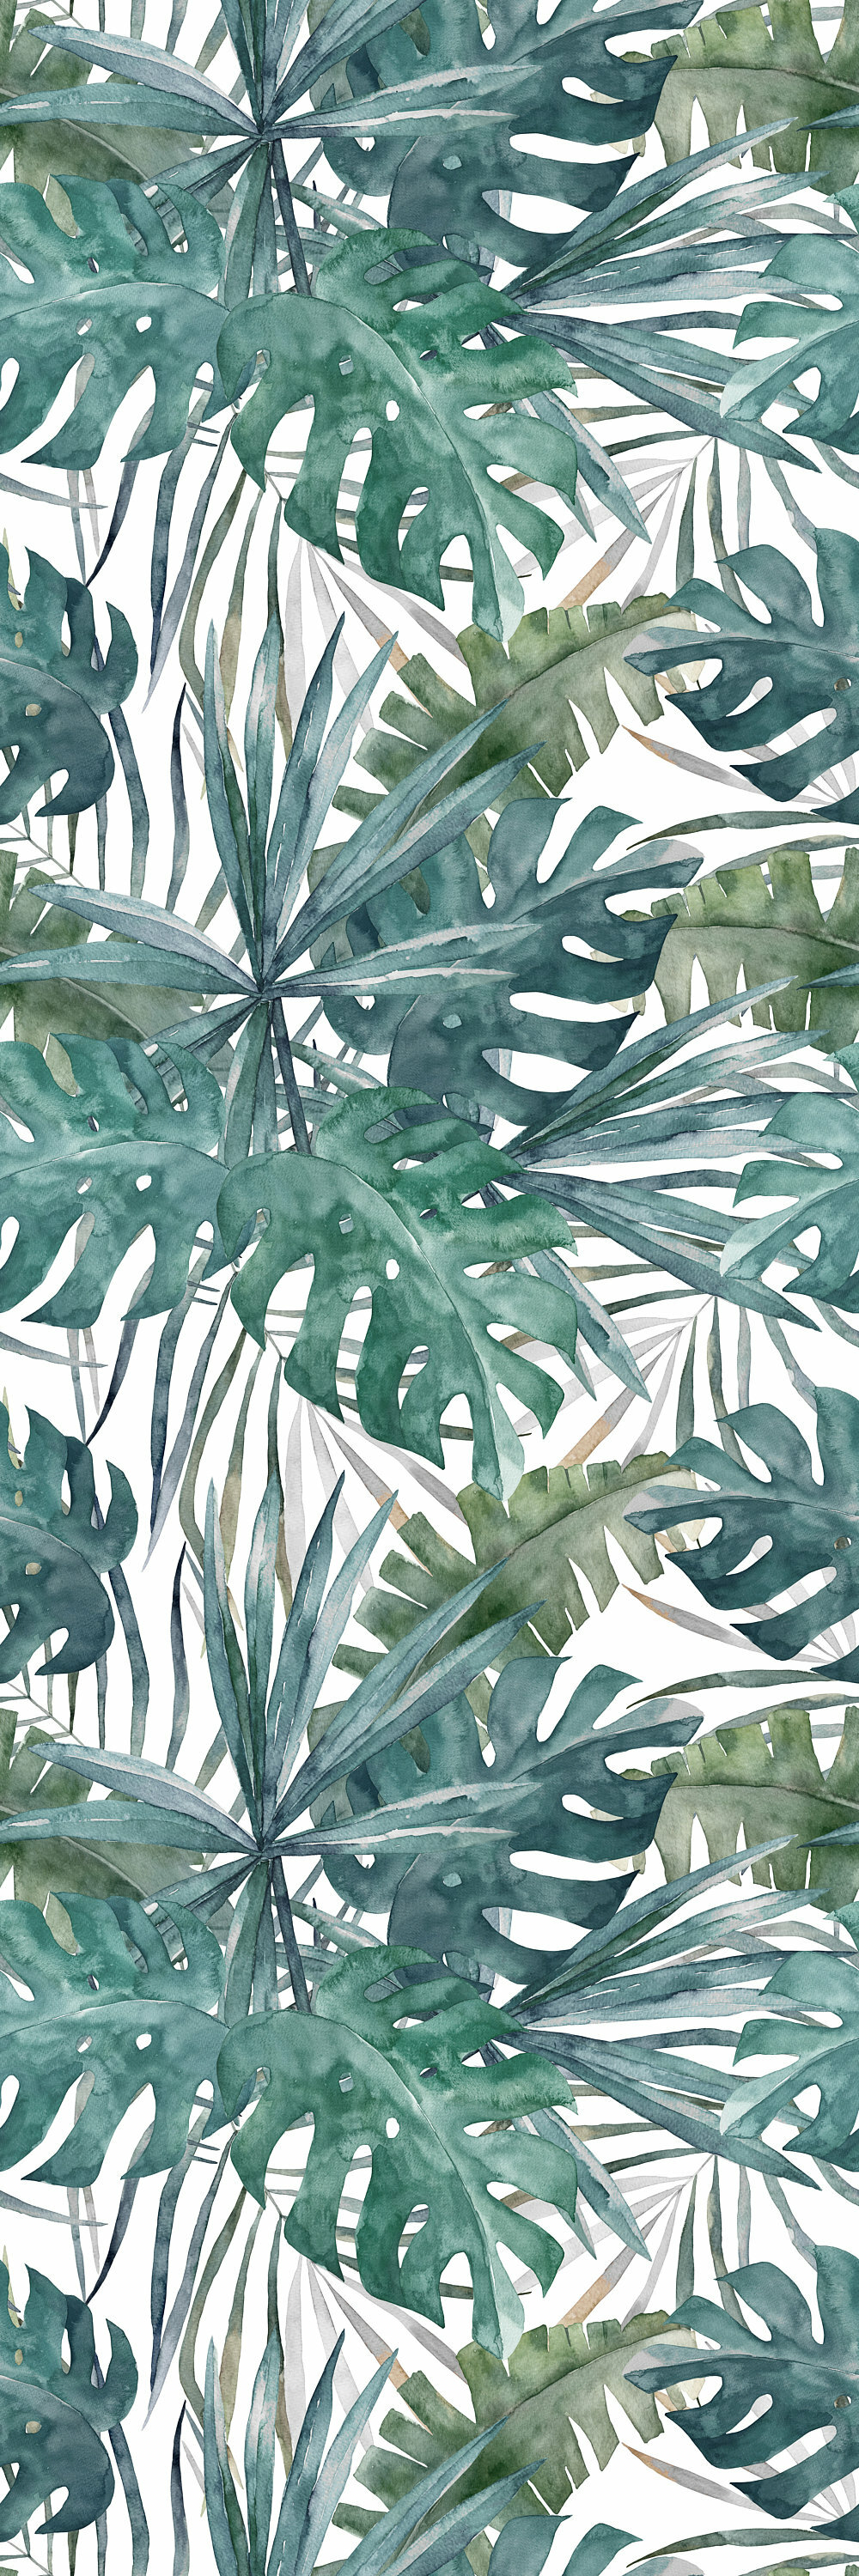 Bay Isle Home Zepeda Removable Vintage Green Palm Leaves 417 L X 25 W Peel And Stick Wallpaper Roll